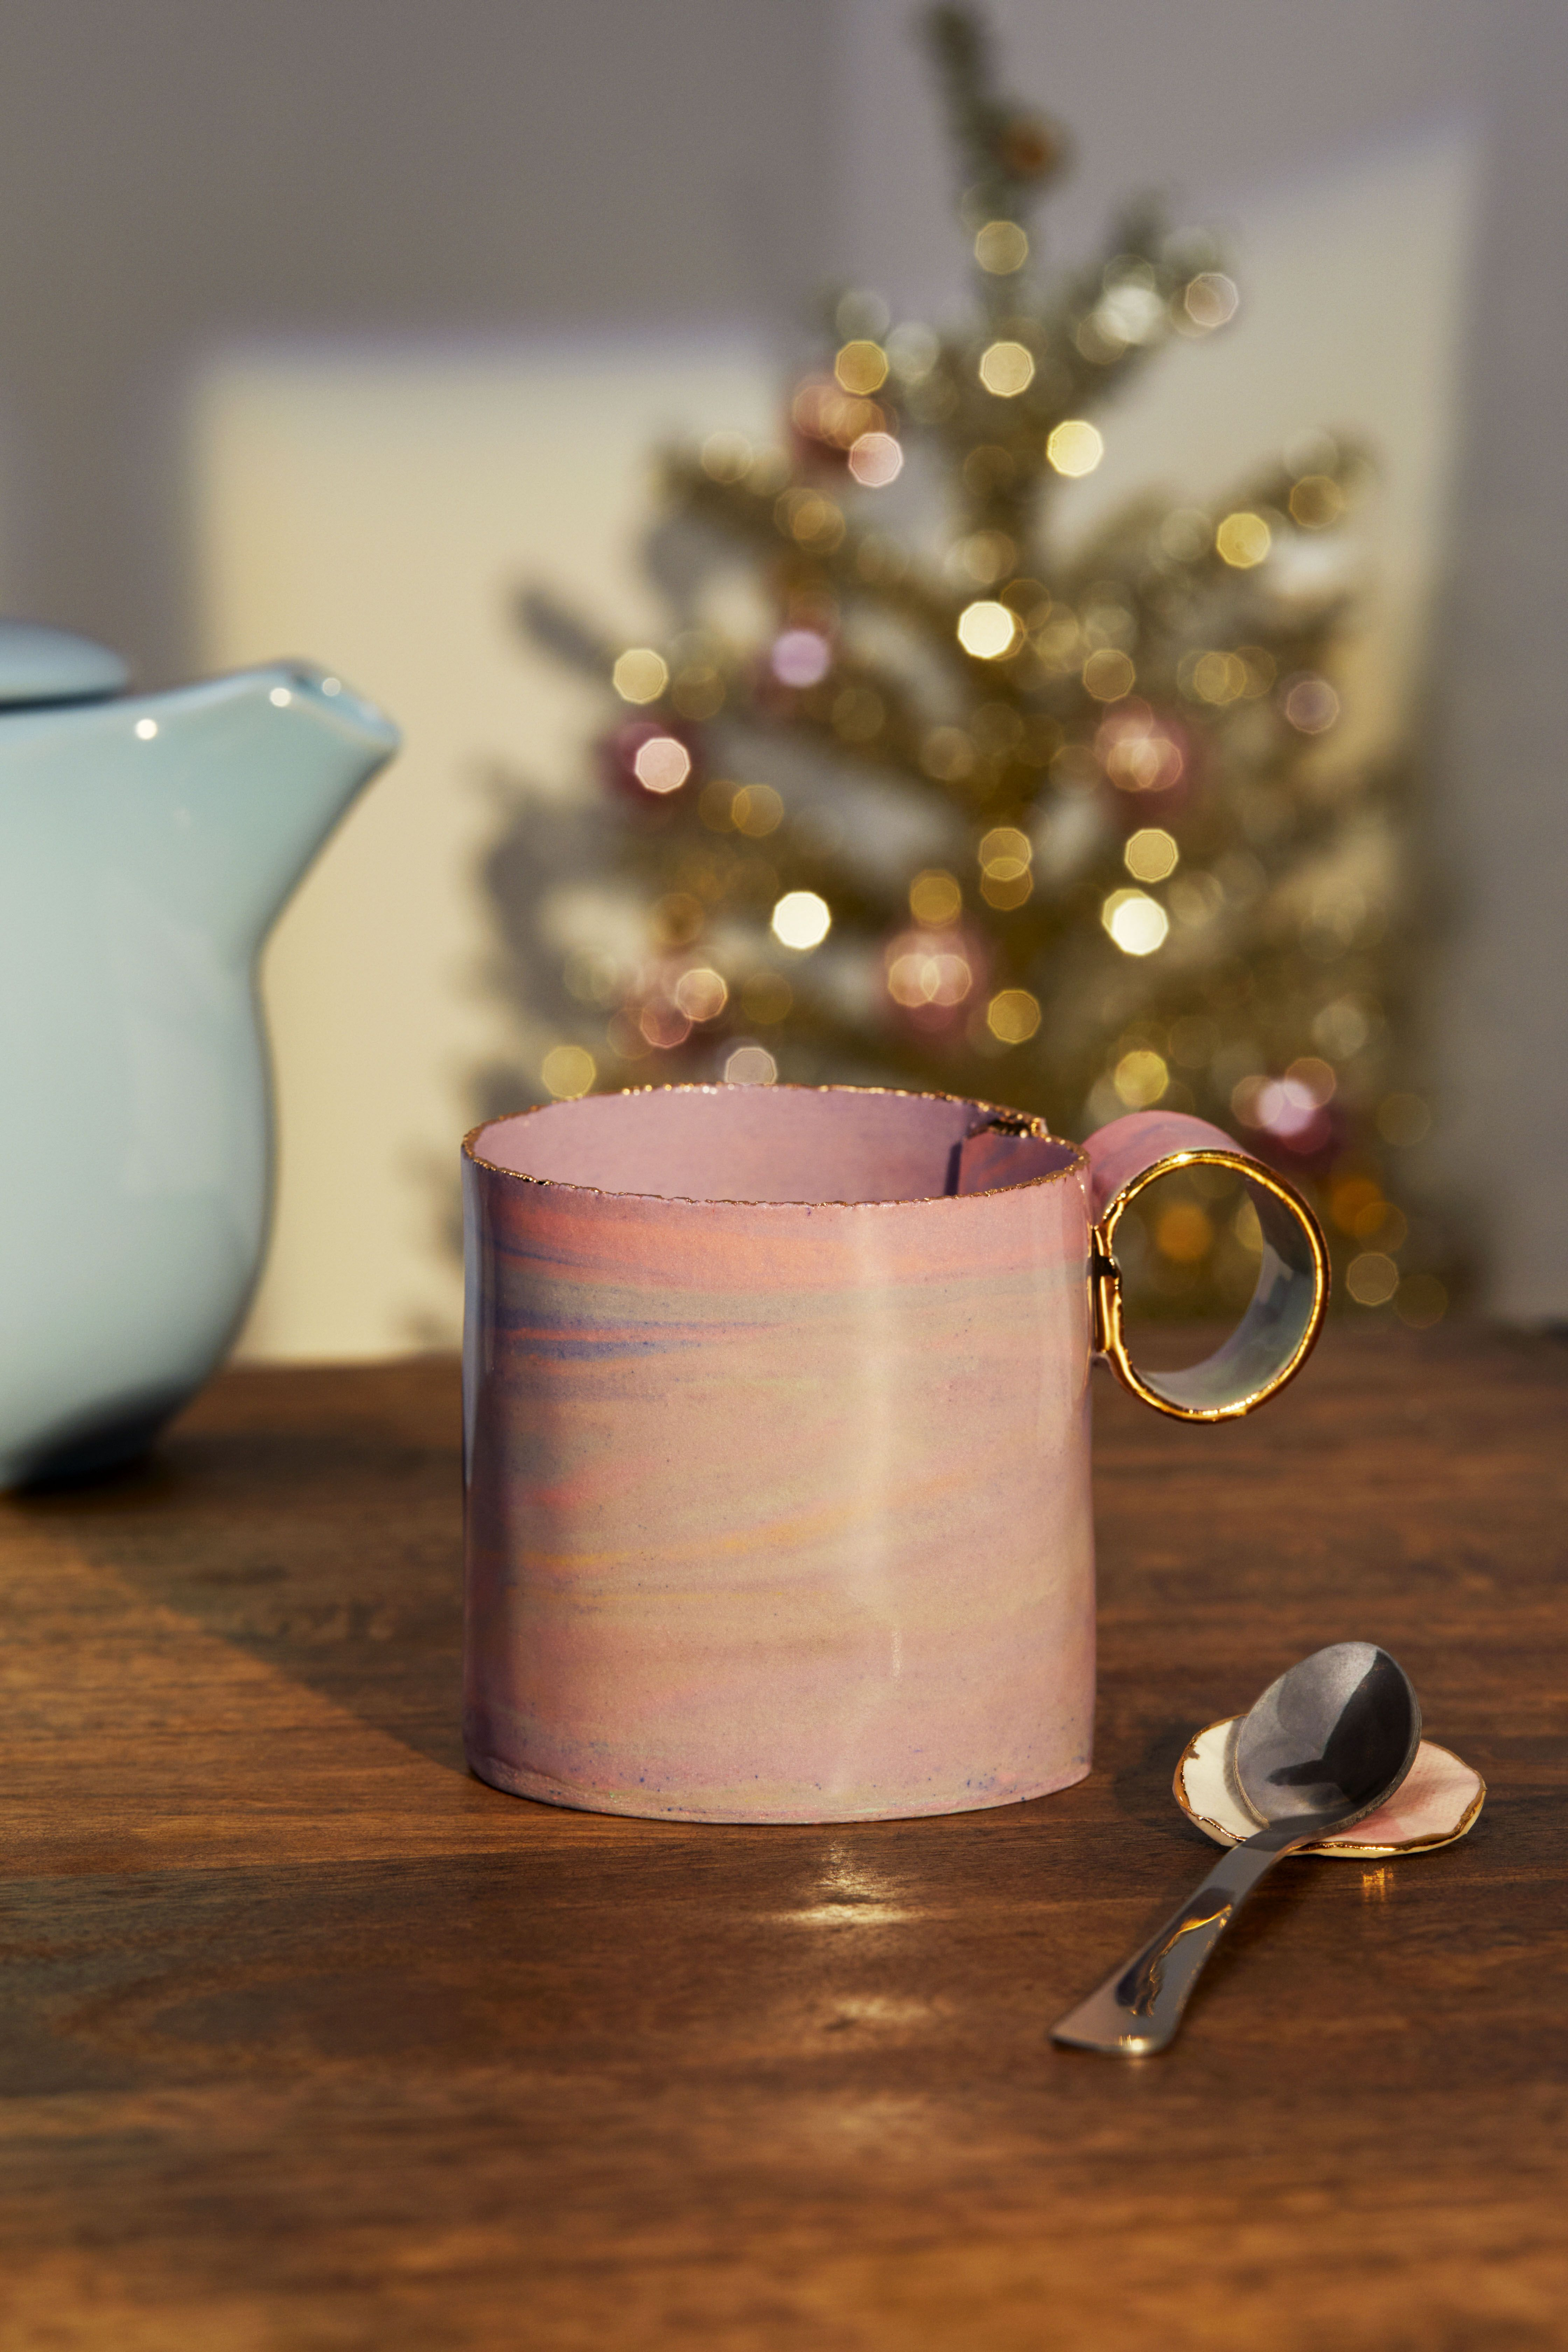 Cute hand-built irregular porcelain mug. It has a delicate gold luster detail and a color combination of colored clays. Give to the coffee lover for their morning cup or use to hold pens at your WFH set-up. Find affordable gifts with tons of personality this holiday season only on Etsy.